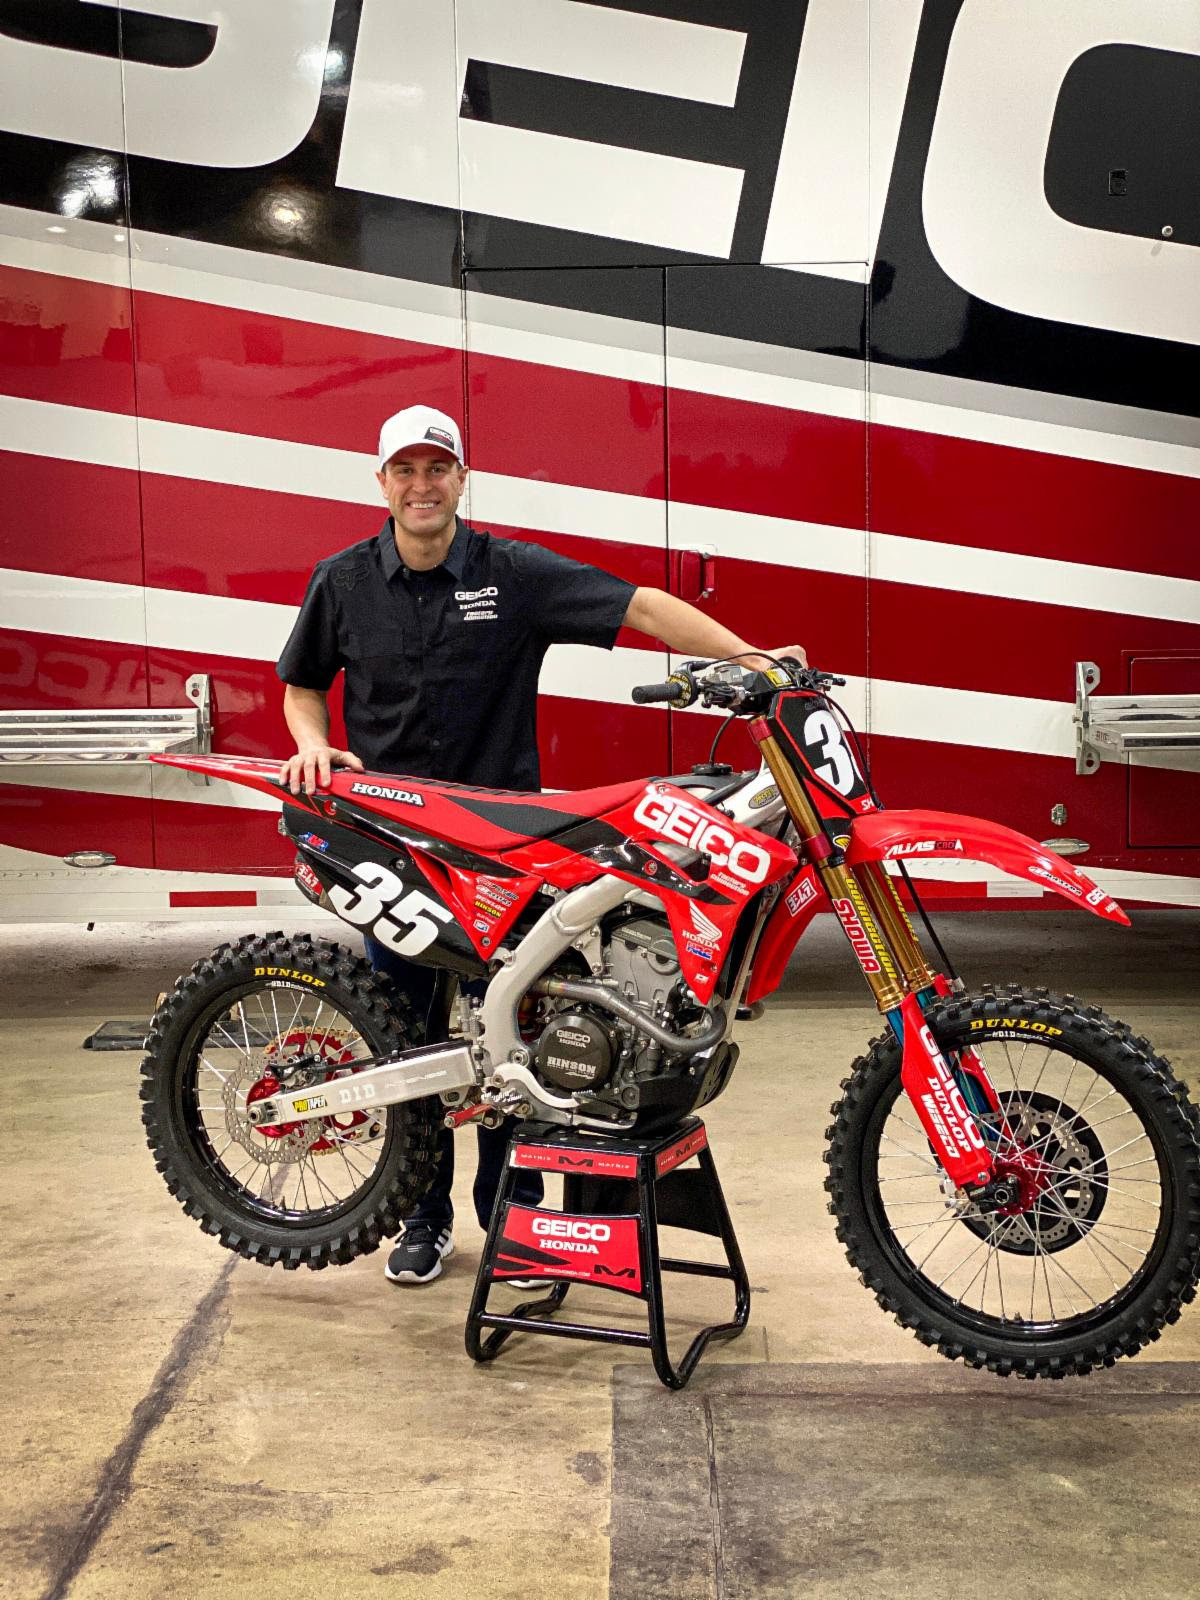 Ryan Dungey Becomes Part Owner of Factory Connection Racing